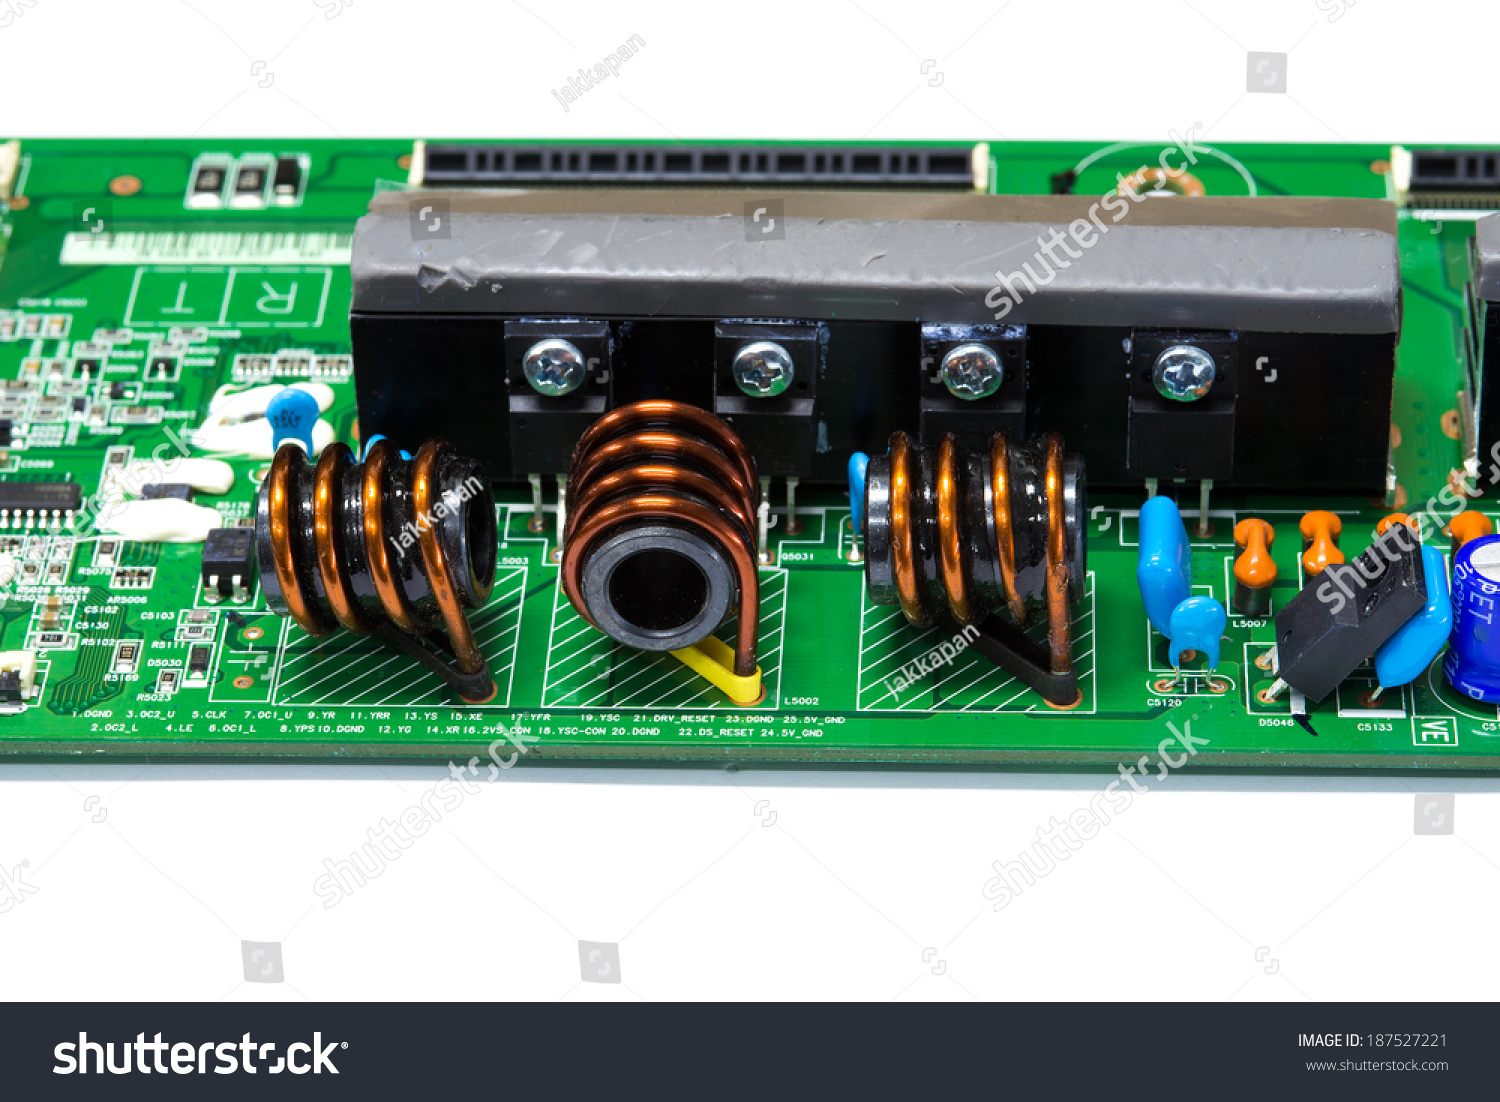 Integrated Circuit Inductor Ferrite Core Electronic Stock Photo In Board Isolate On White